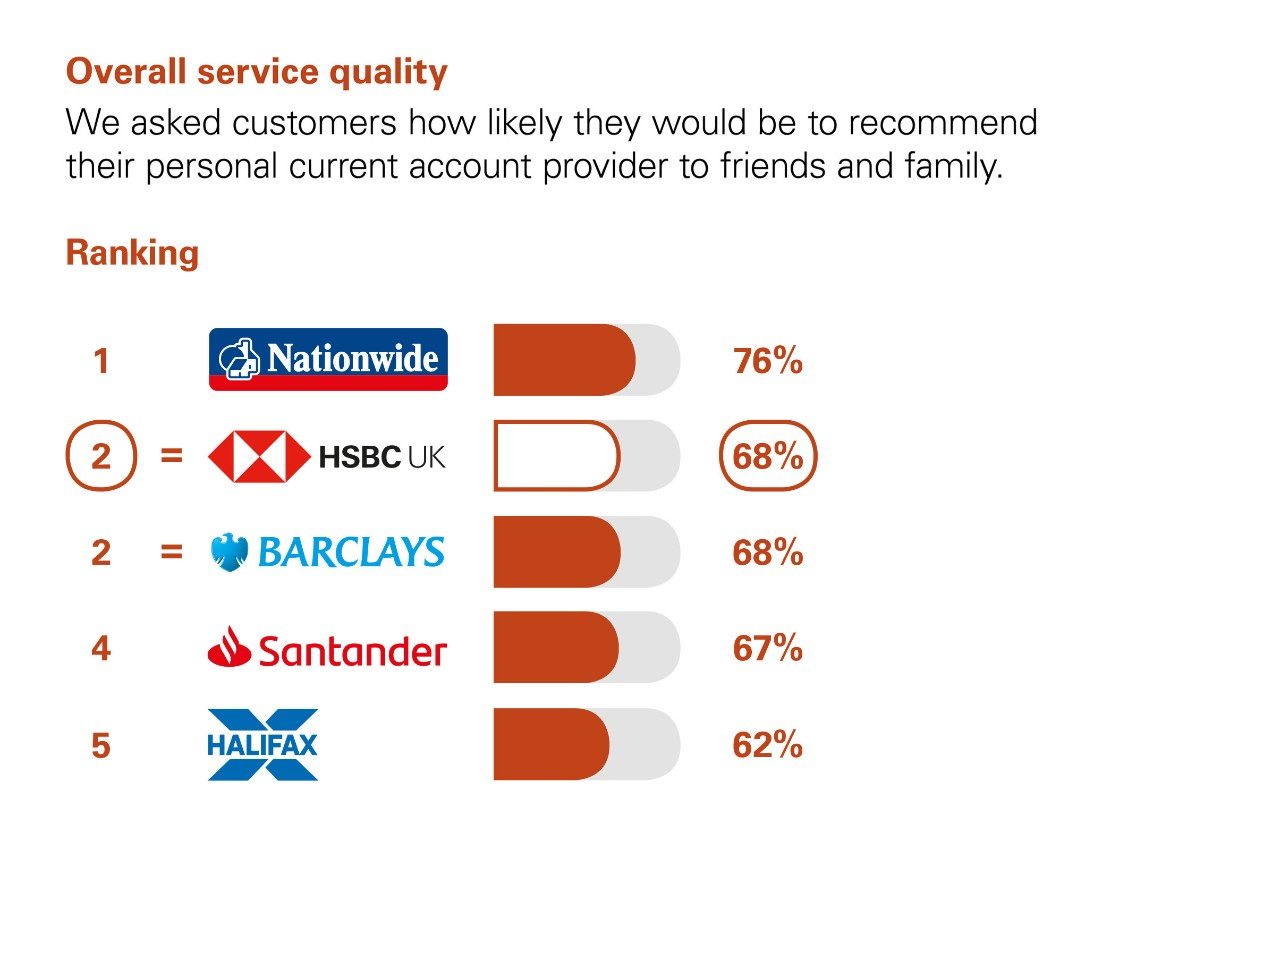 Overall Service Quality. We asked customers how likely they would be to recommend their personal current account provider to friends and family. Ranking: 1 Nationwide 76% 2 equal HSBC UK  and  Barclays 68%. 4 Santander 67%. 5 Halifax 62%.